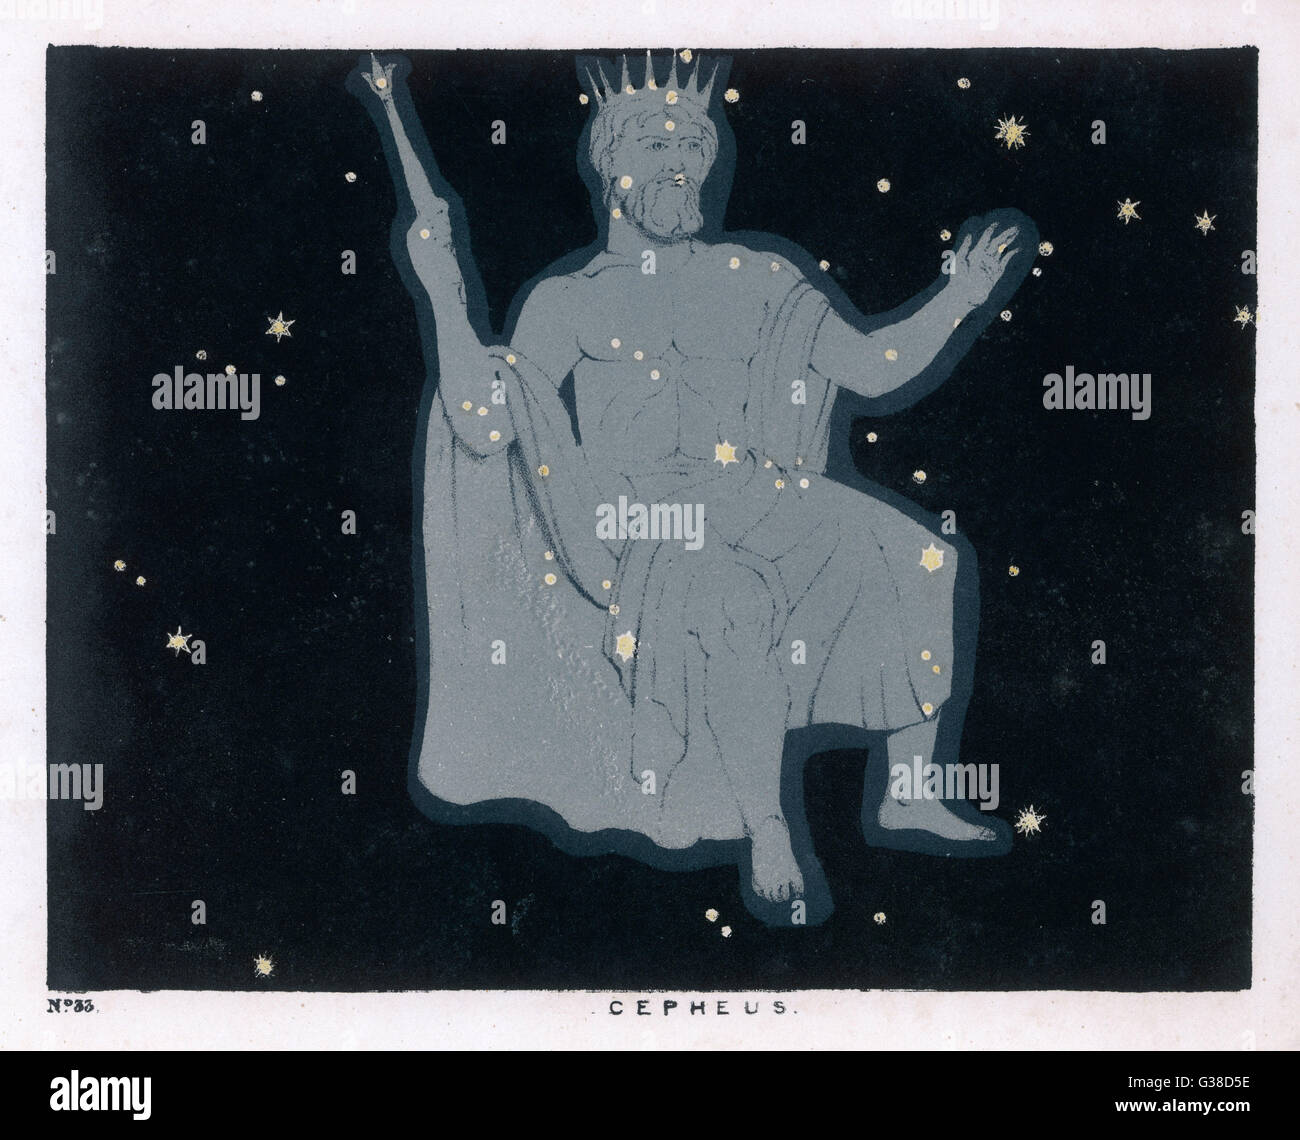 The constellation of Cepheus  which takes the form of a  'regal personage, seated,  having a diadem on his head, - Stock Image